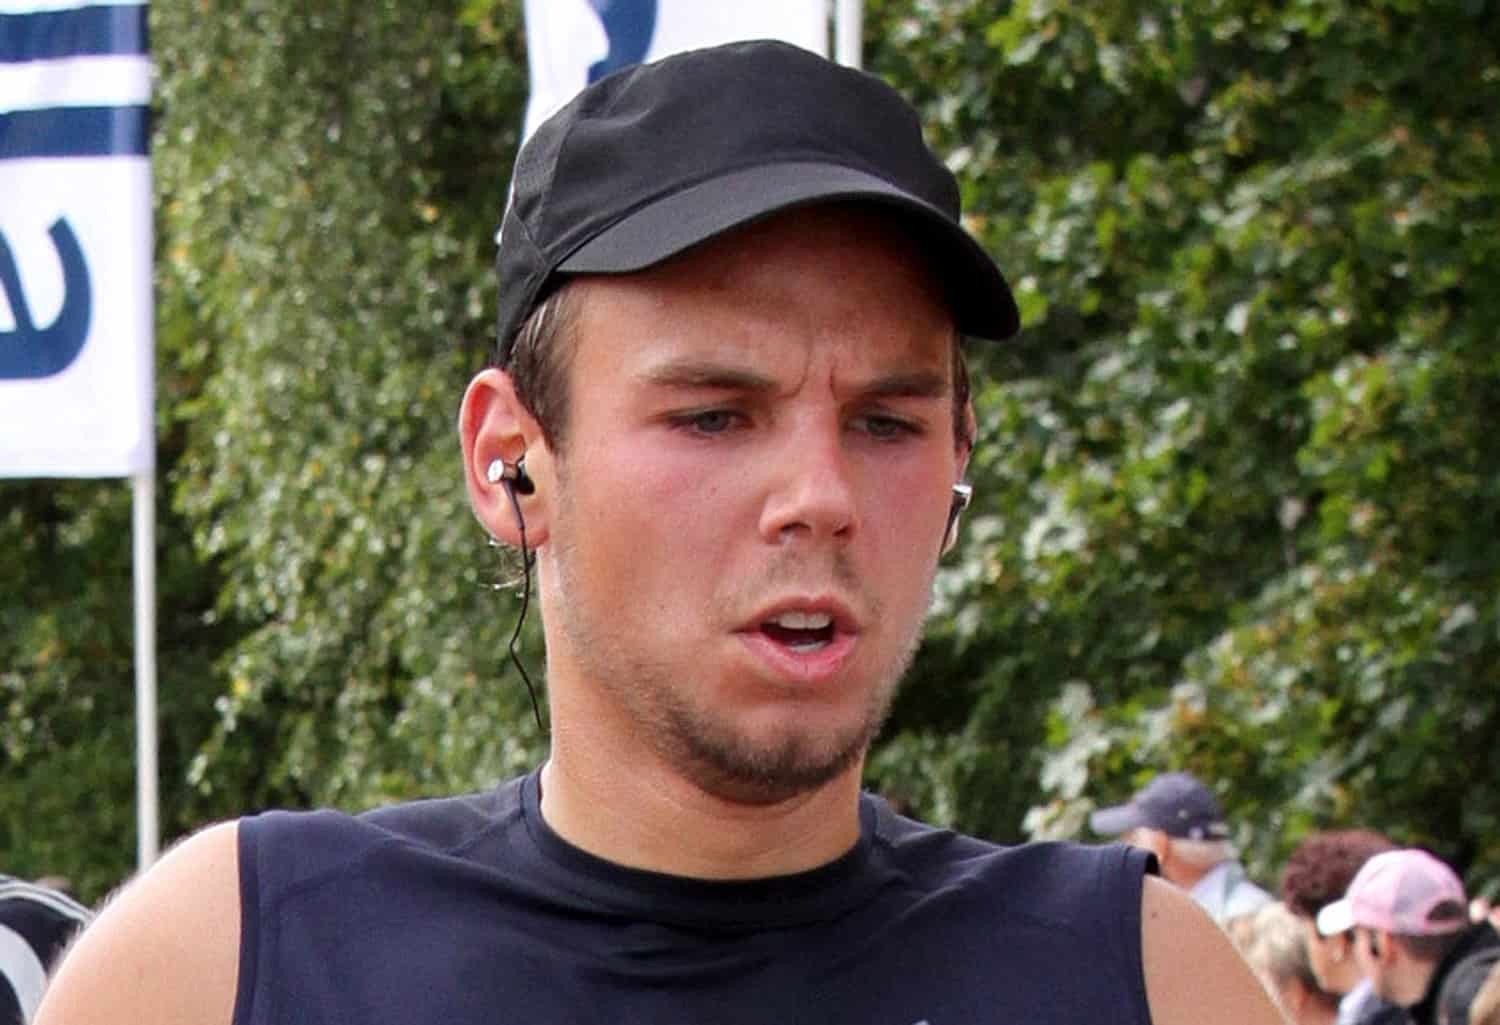 Andreas Lubitz, takes part in the Airport Hamburg 10-mile run on Sept. 13, 2009 in Hamburg.